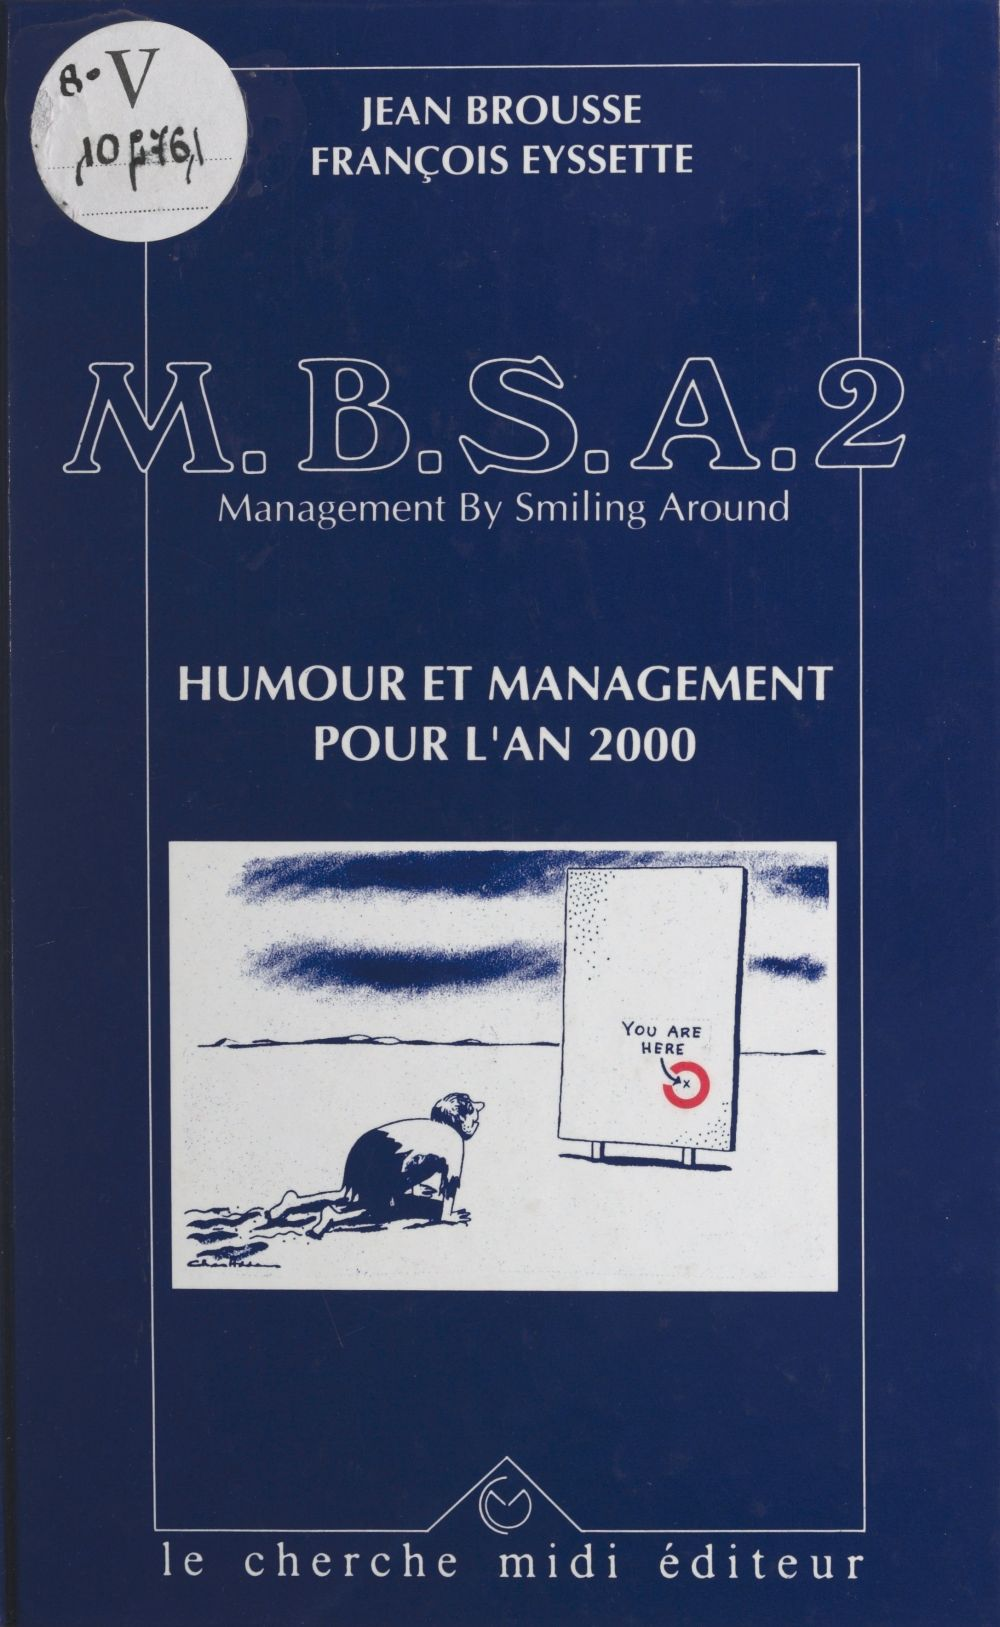 M.B.S.A., management by smiling around (2). Humour et management pour l'an 2000